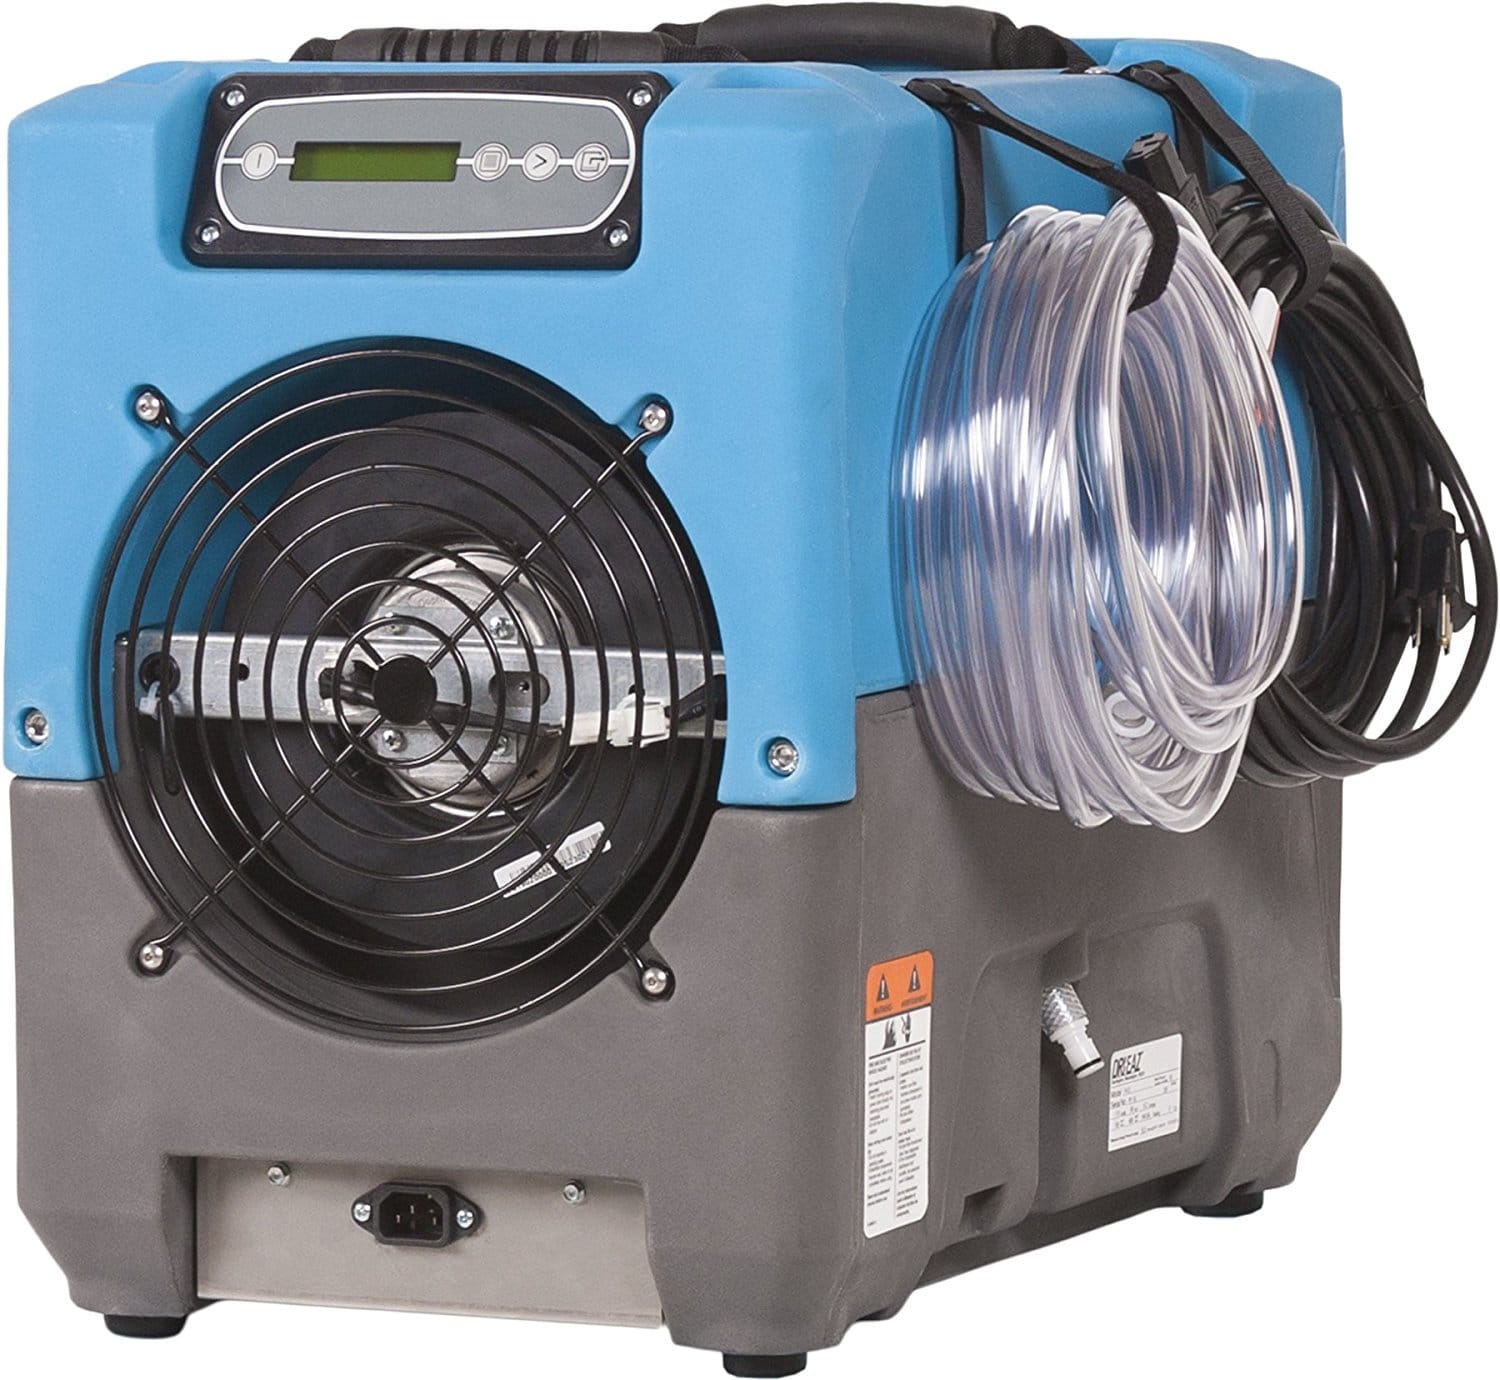 commercial dehumidifier: This is exactly what the beginners' needs